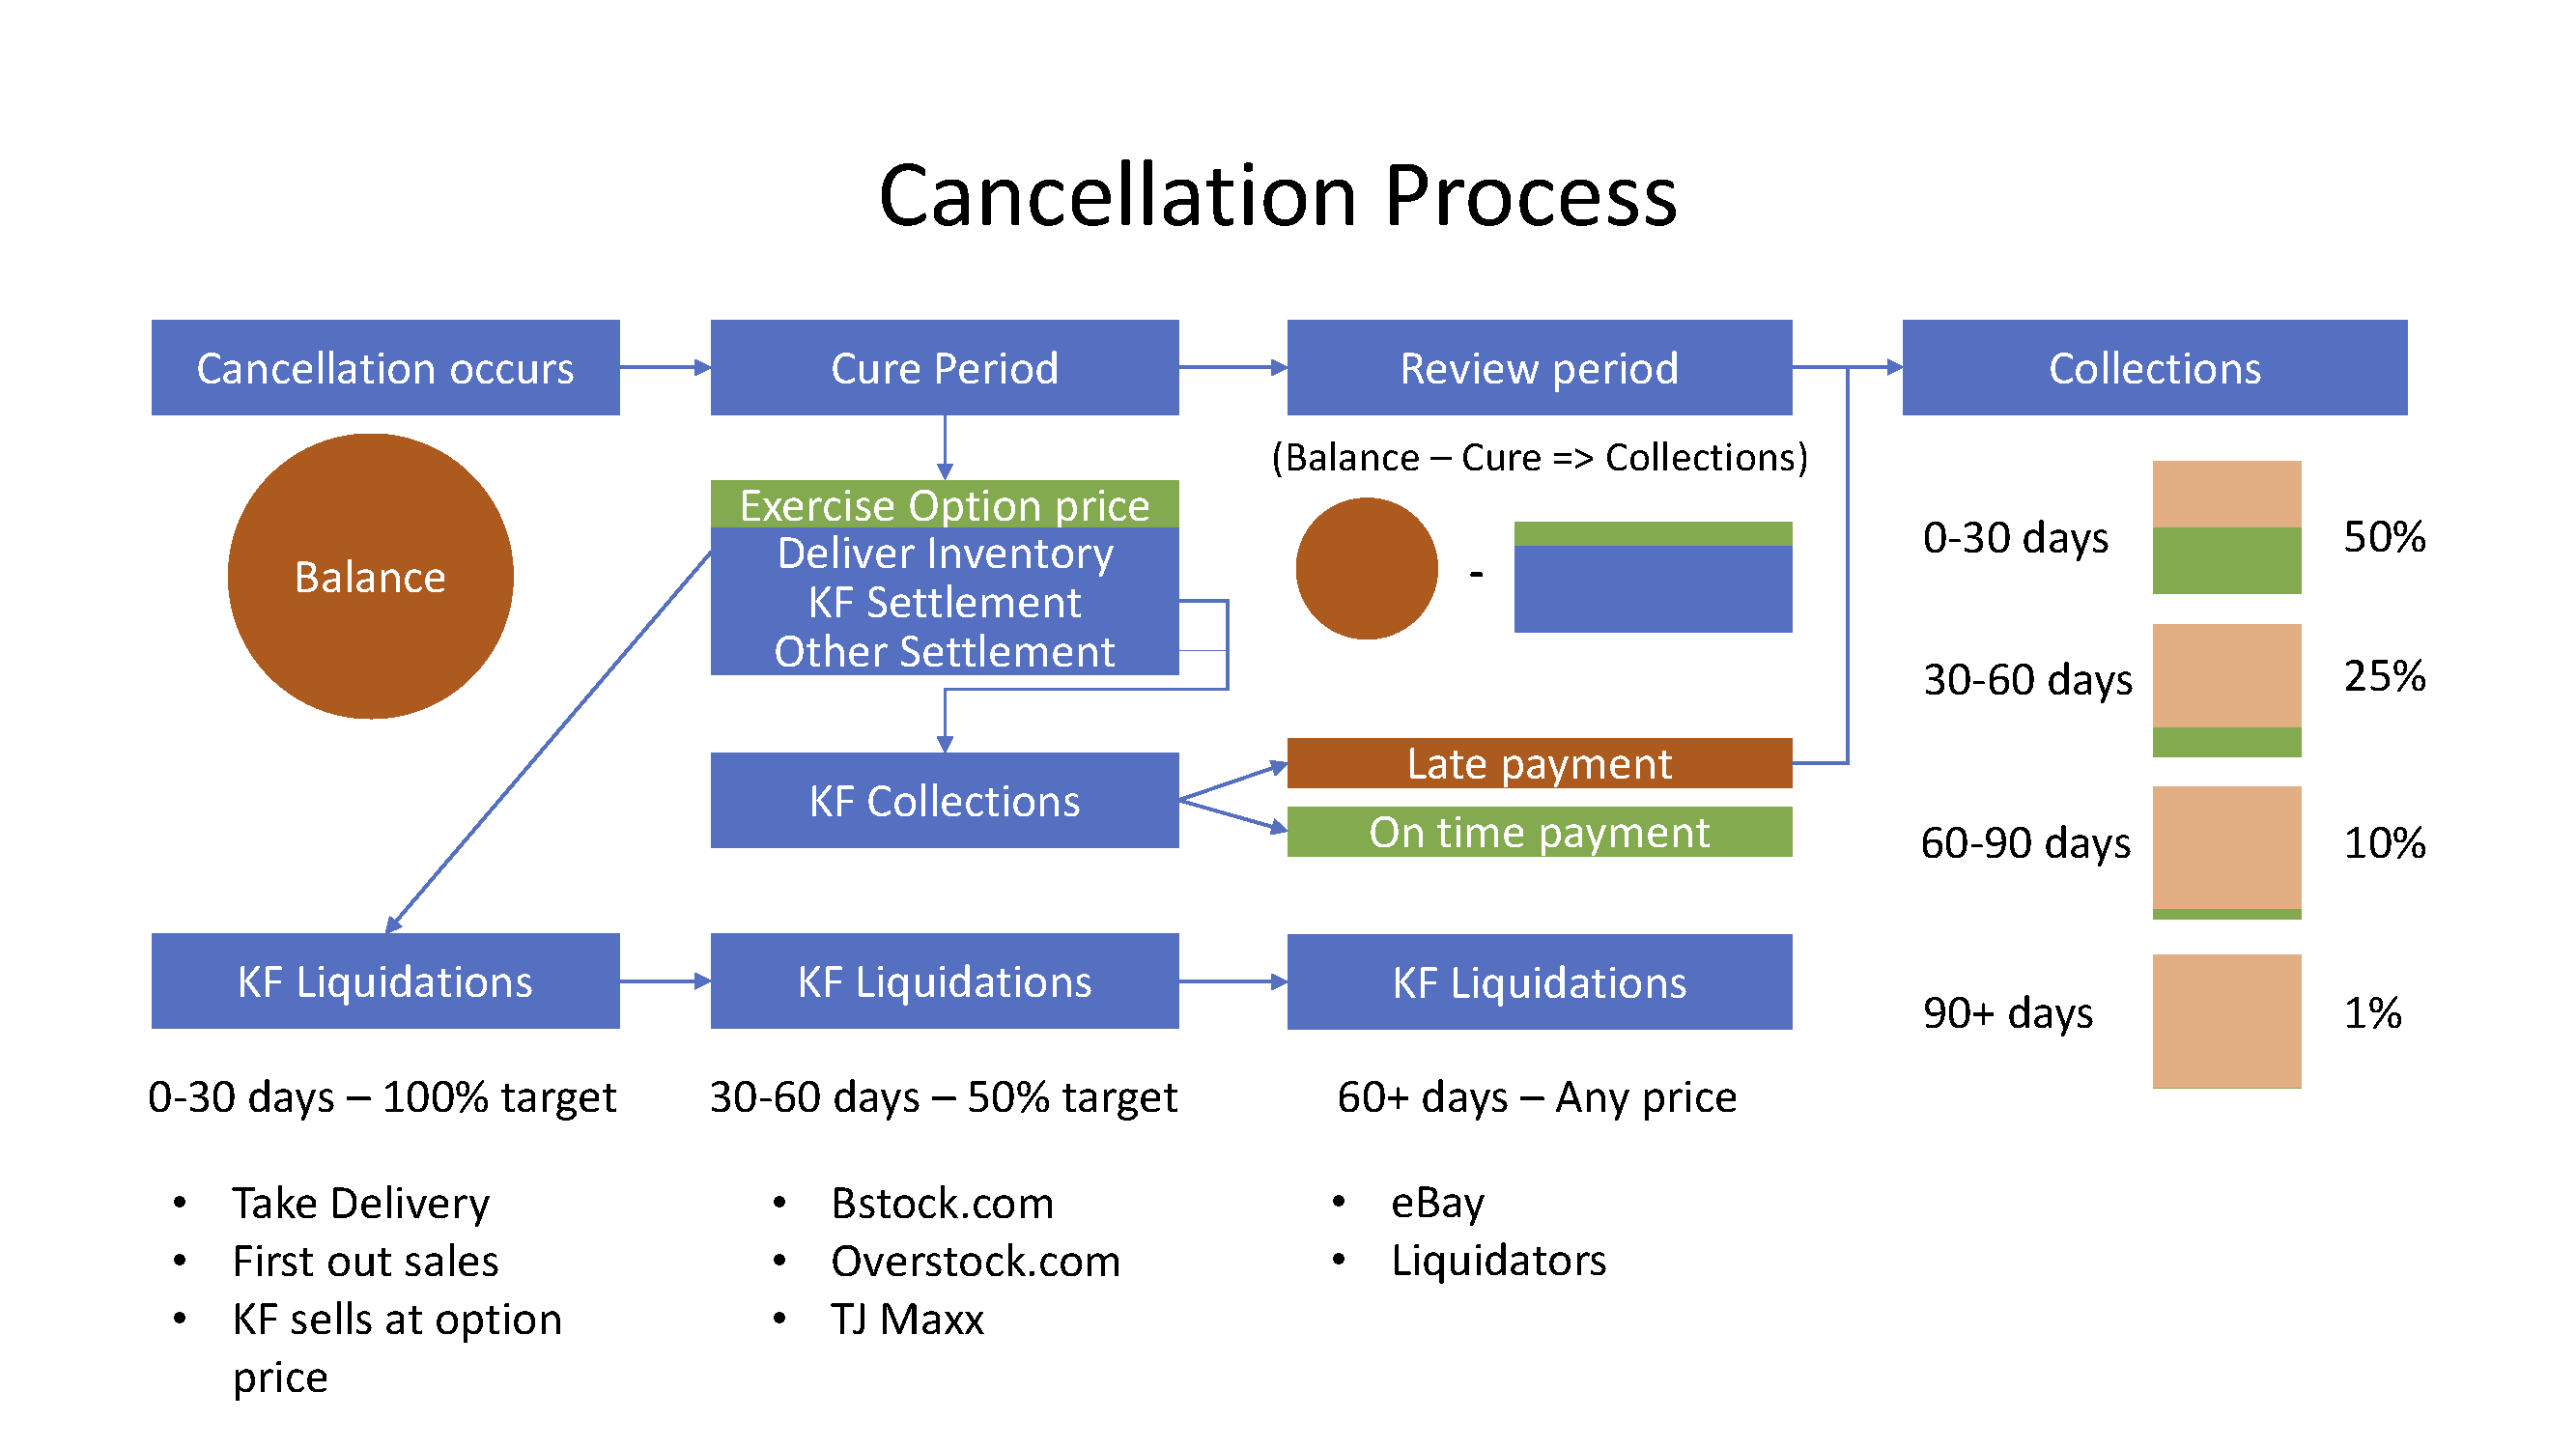 Kickfurther Cancellation Process